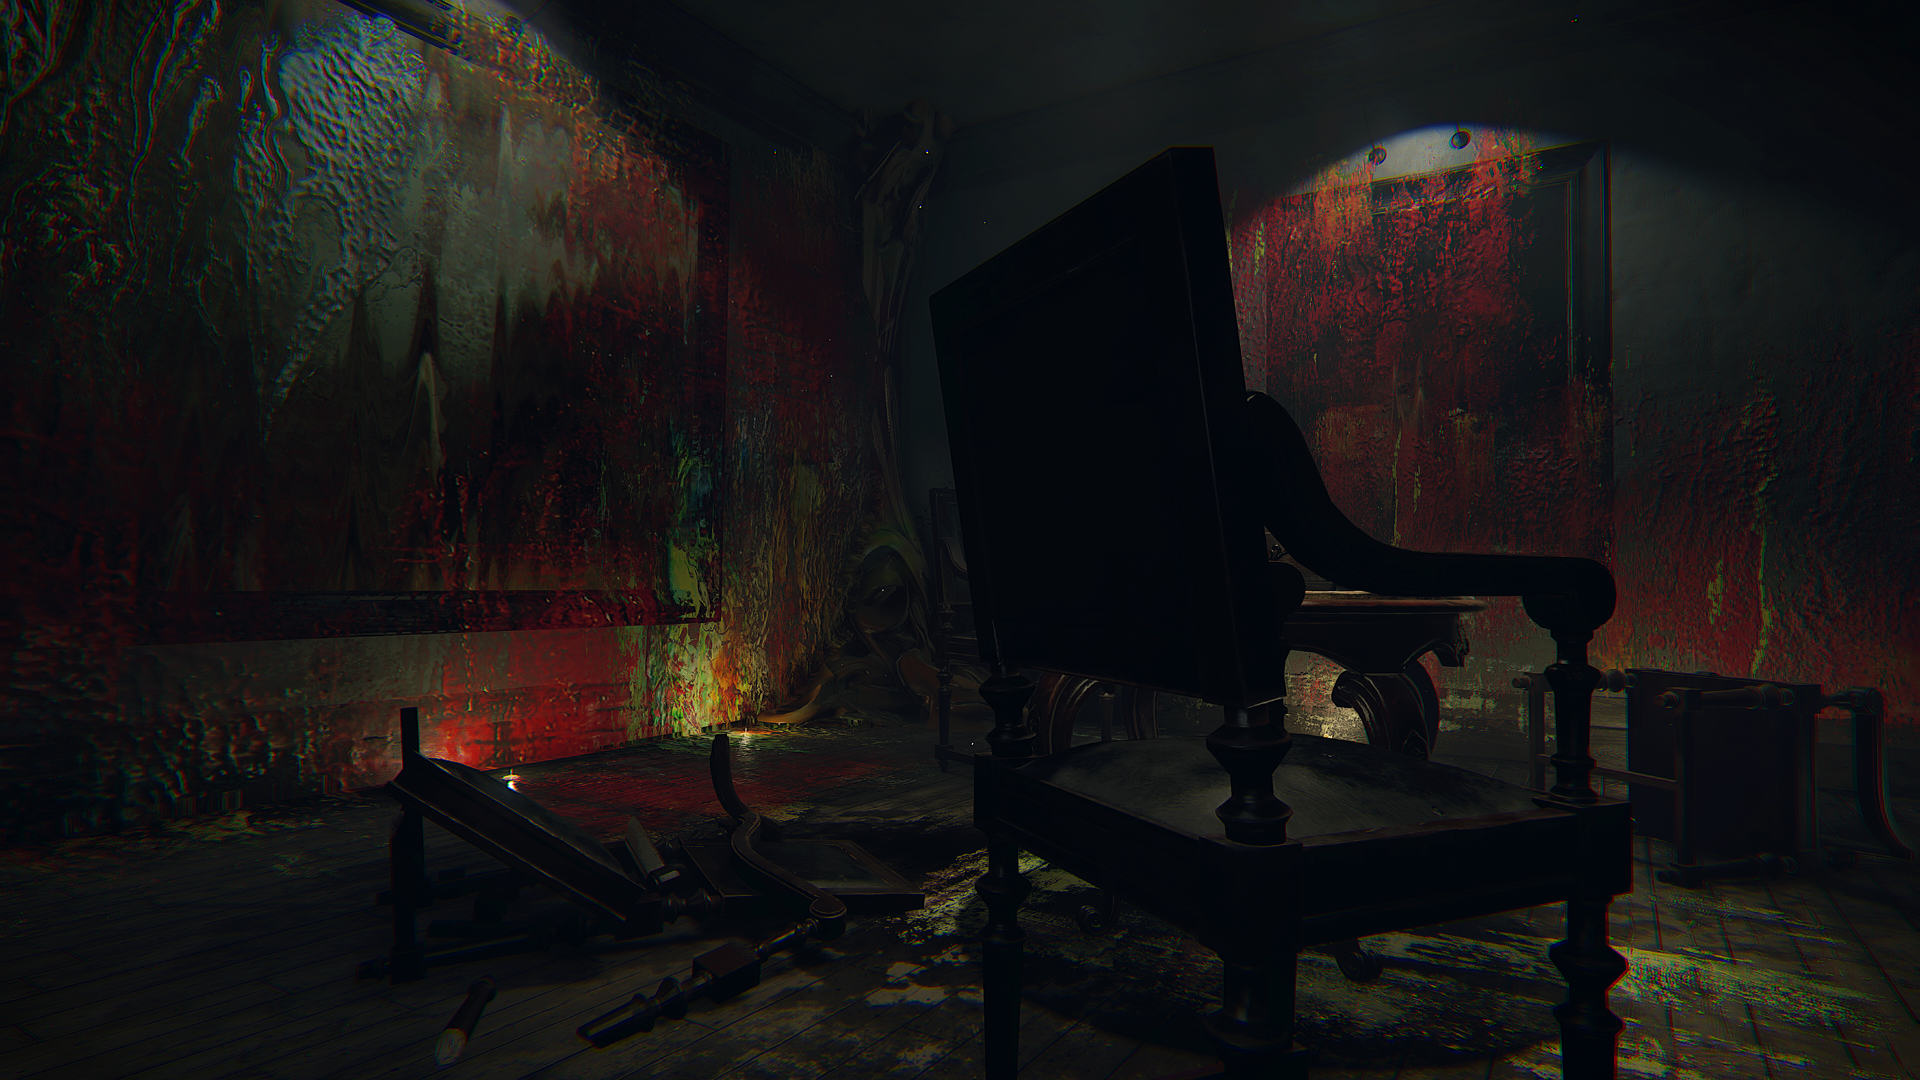 P.T. Inspired Layers Of Fear Gets Release Date, Looks Absolutely Terrifying pu28dd2c7955ce926456240b2ff0100bde 1446046473 7939764 screenshot original